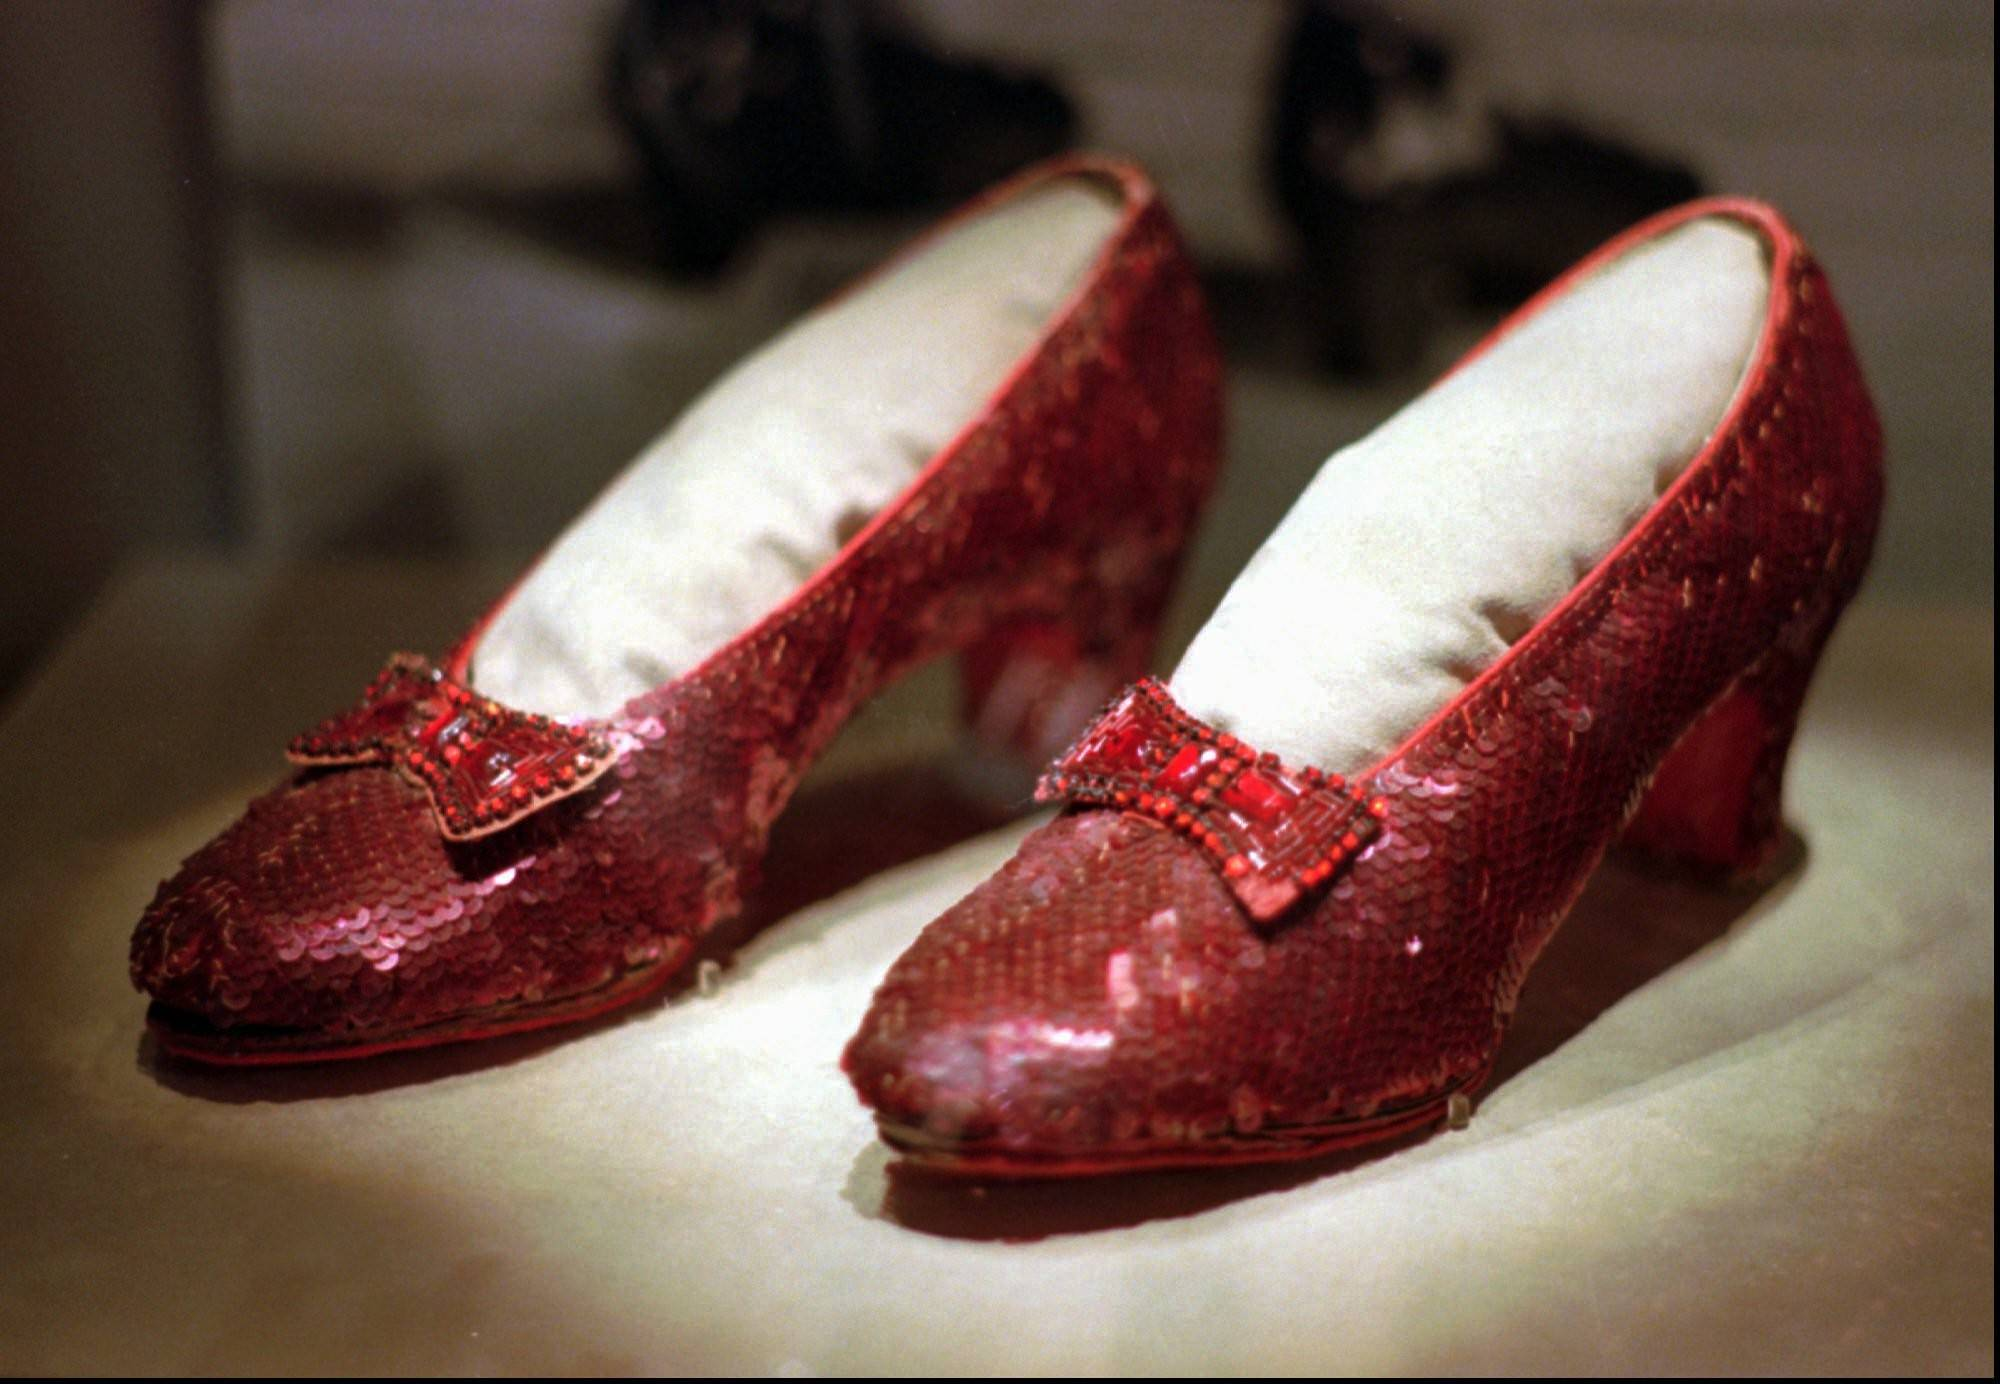 "The ruby slippers worn by Judy Garland in the 1939 film ""The Wizard of Oz"" were size 4½, according to ""The Wizard of Oz FAQ"" by Arlington Heights author David J. Hogan."